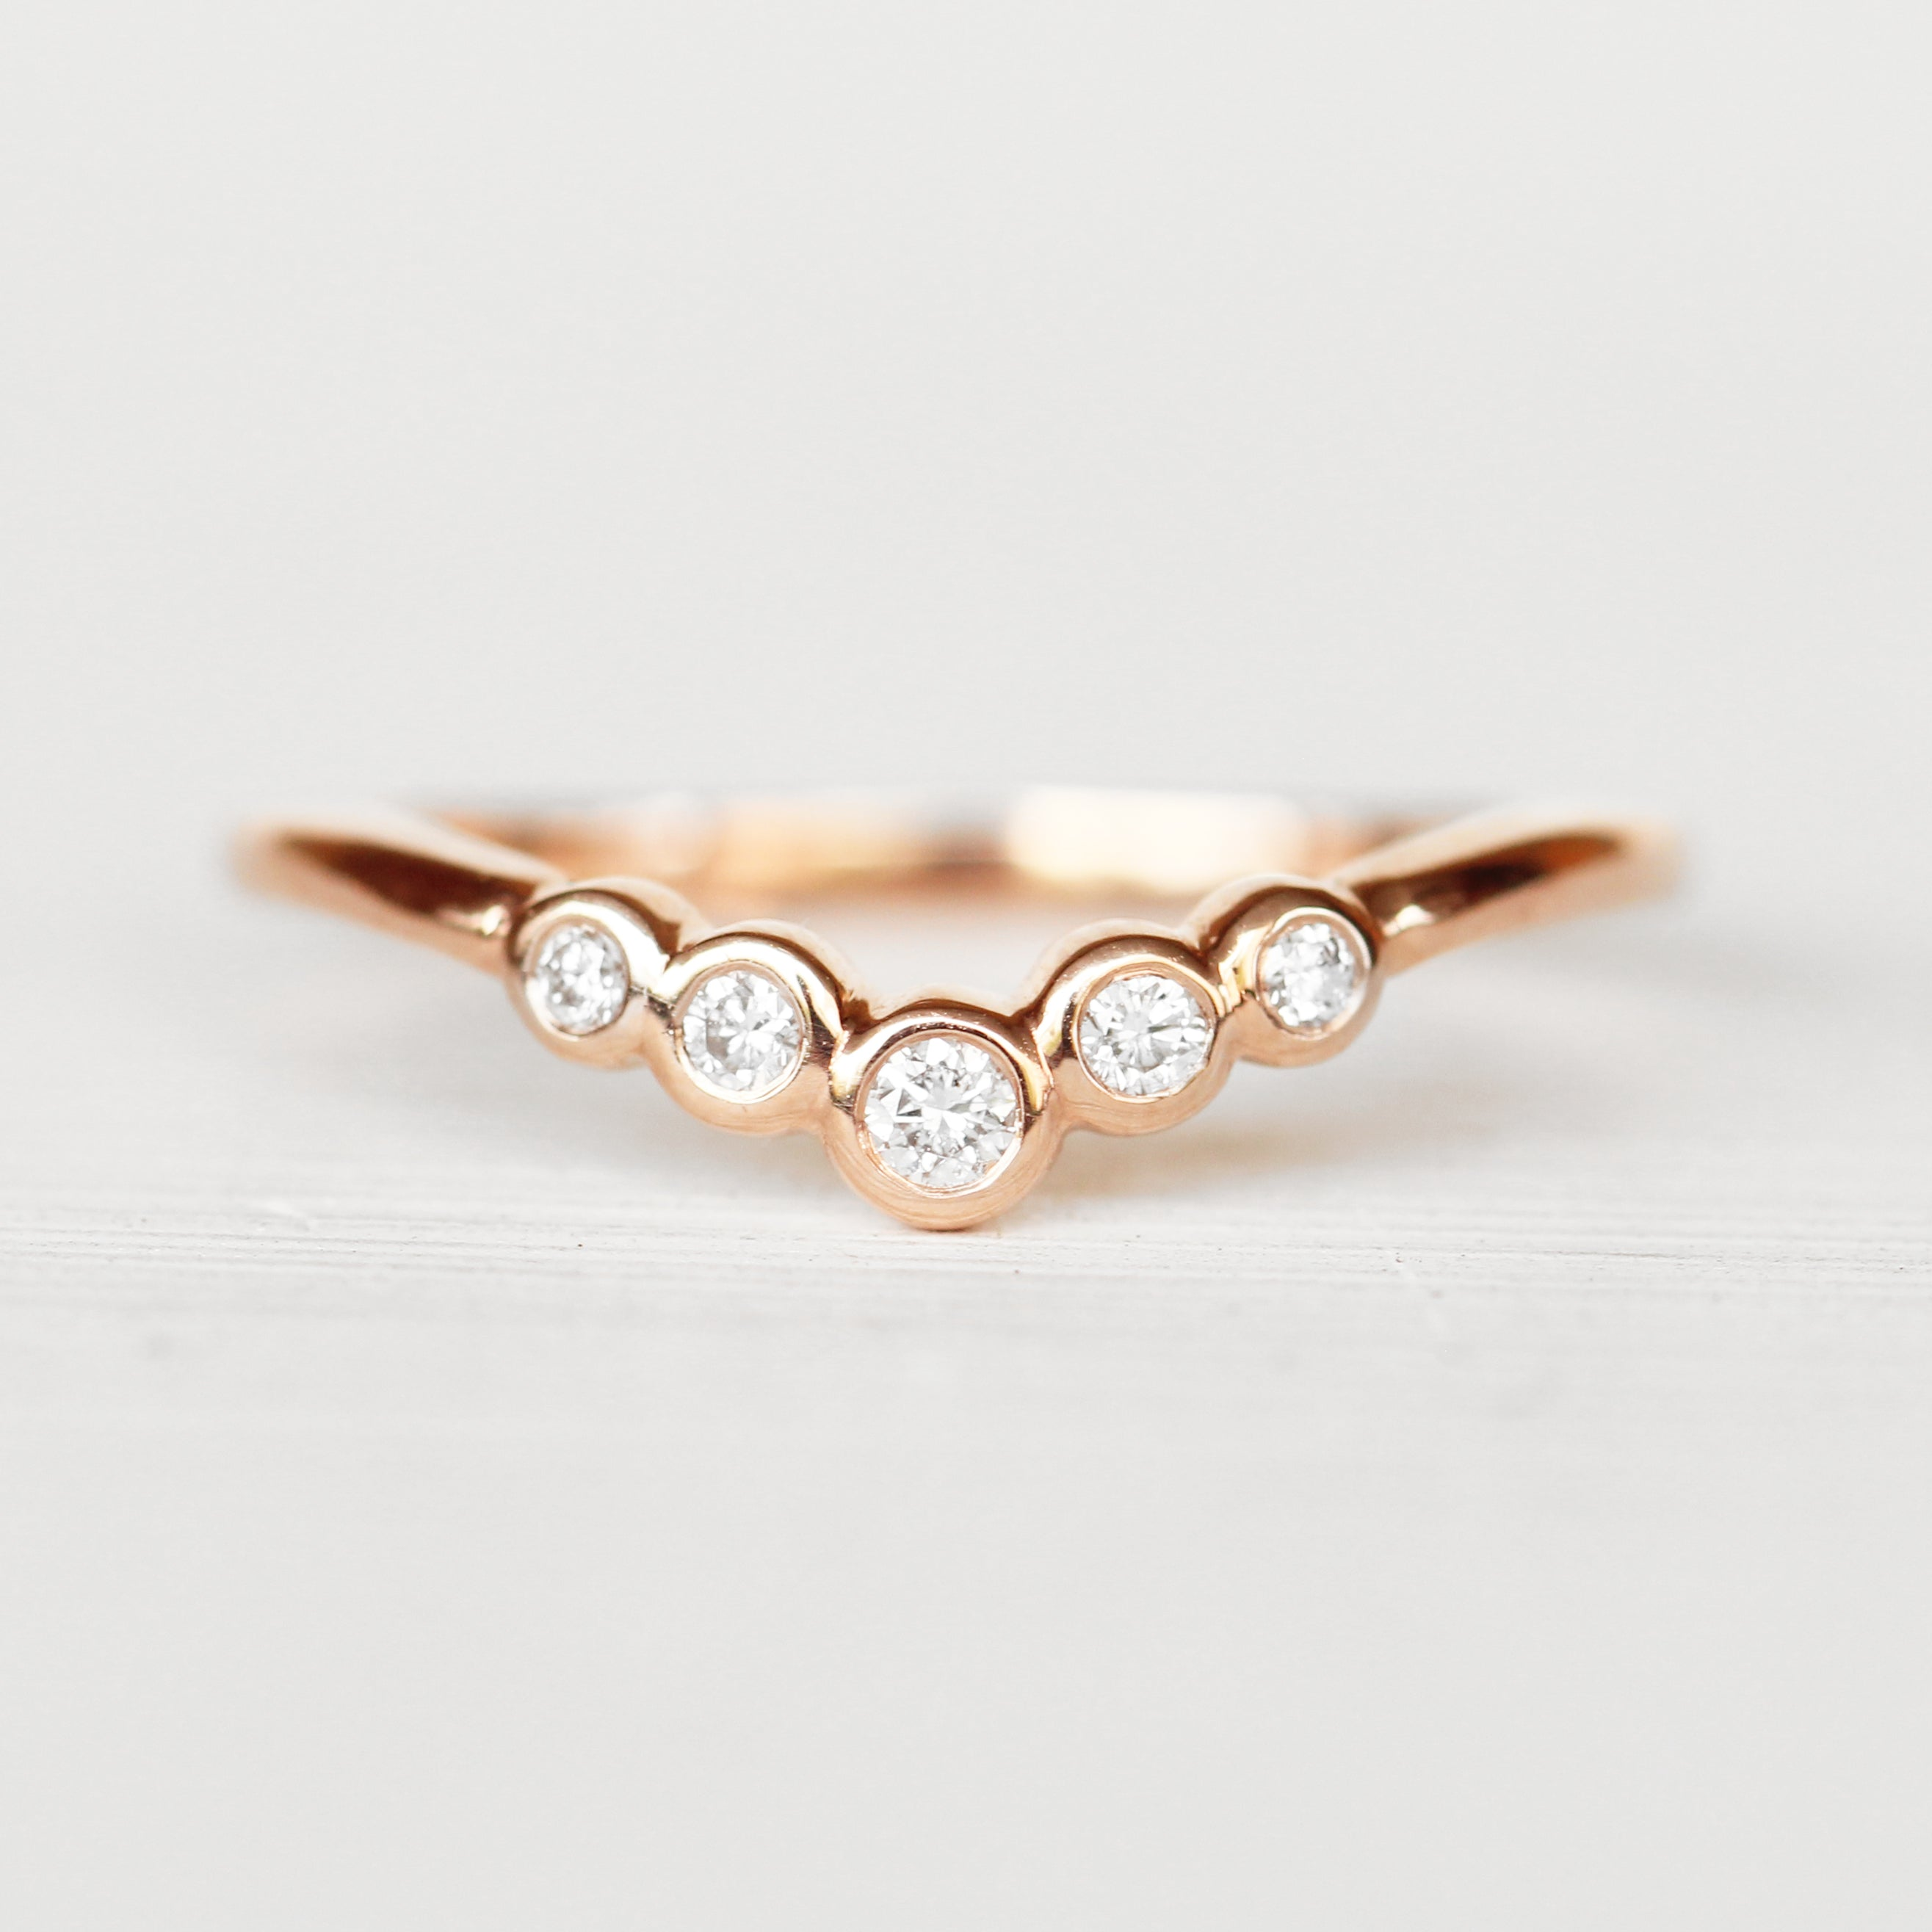 Colette V-Contoured Bezel-Set Stackable Wedding Band - Made to Order - Celestial Diamonds ® by Midwinter Co.